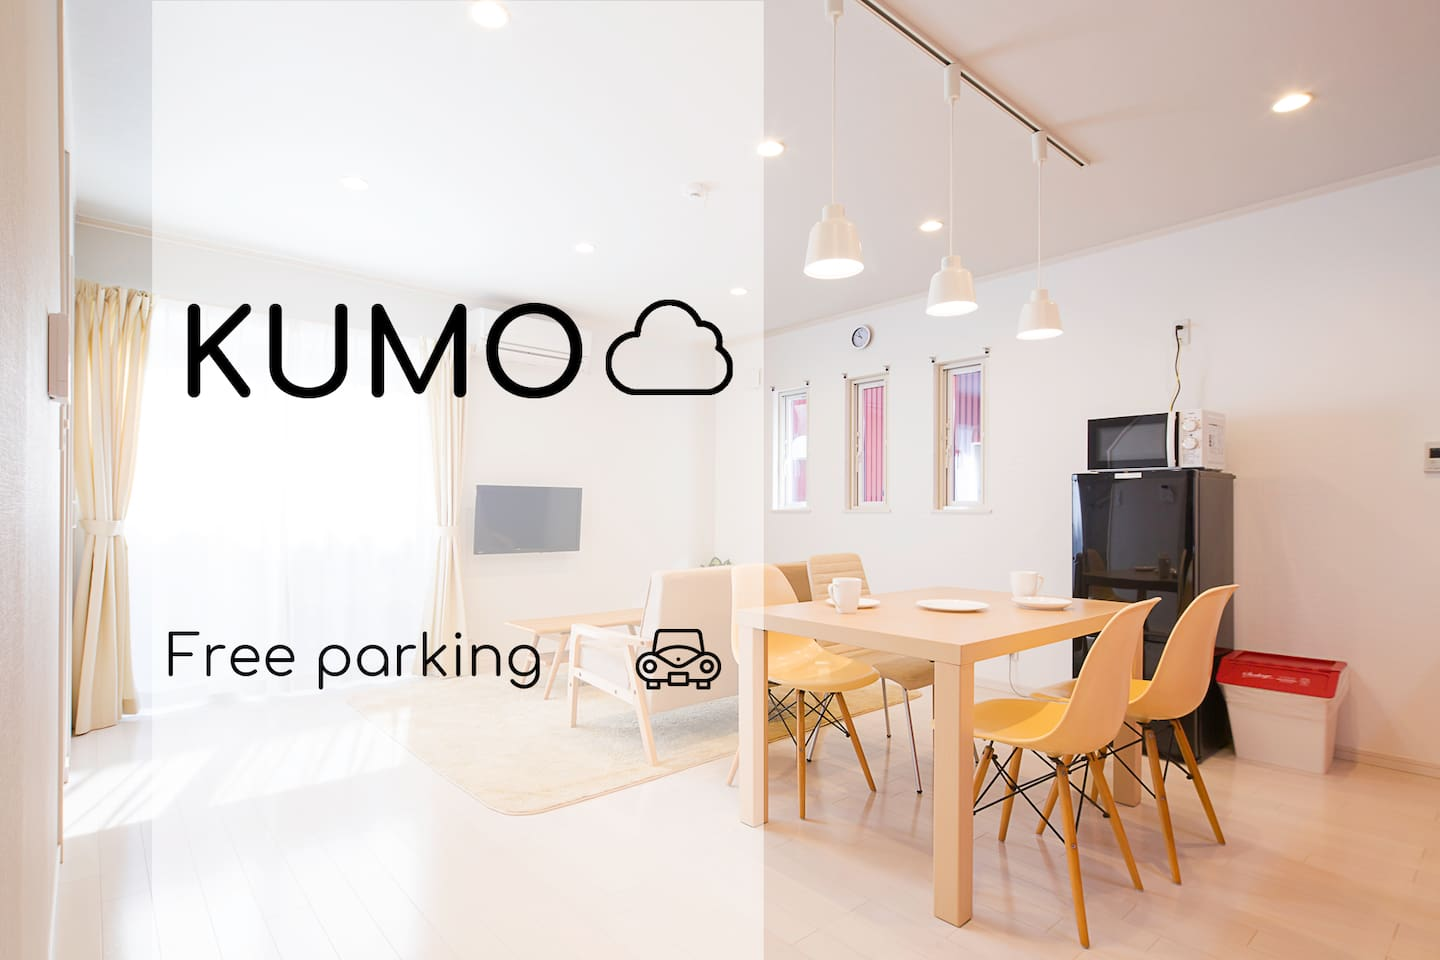 KUMO☆どうぞ、ごゆっくりおとおくつろぎください。/Welcome to KUMO☆! Please enjoy socializing each other in this living dining room.